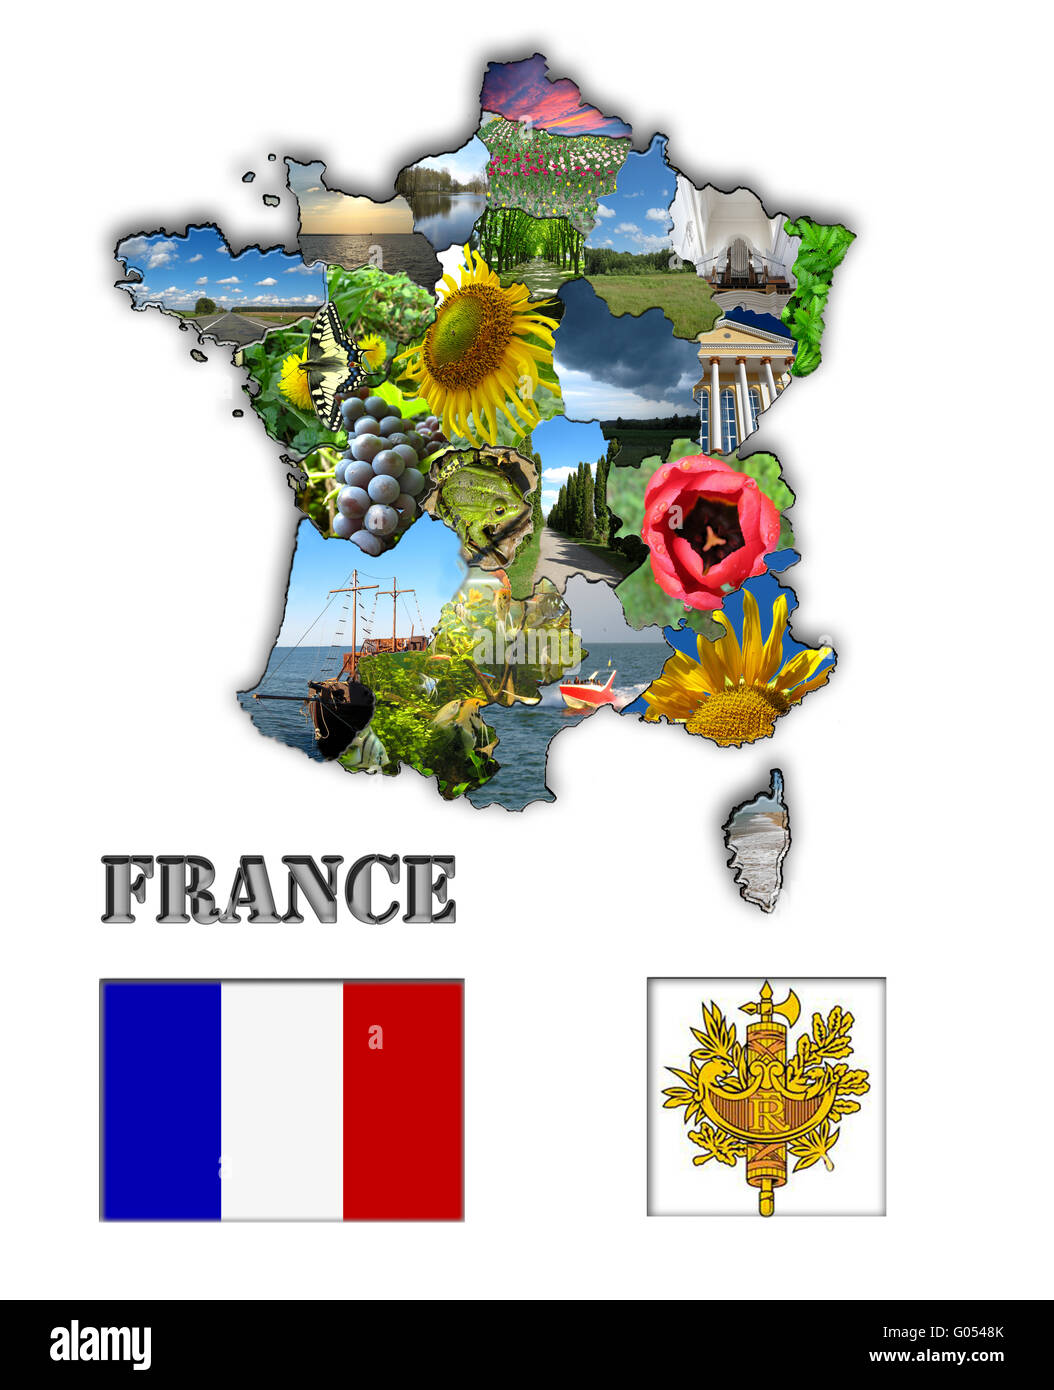 Coloured map of France made from different images - Stock Image